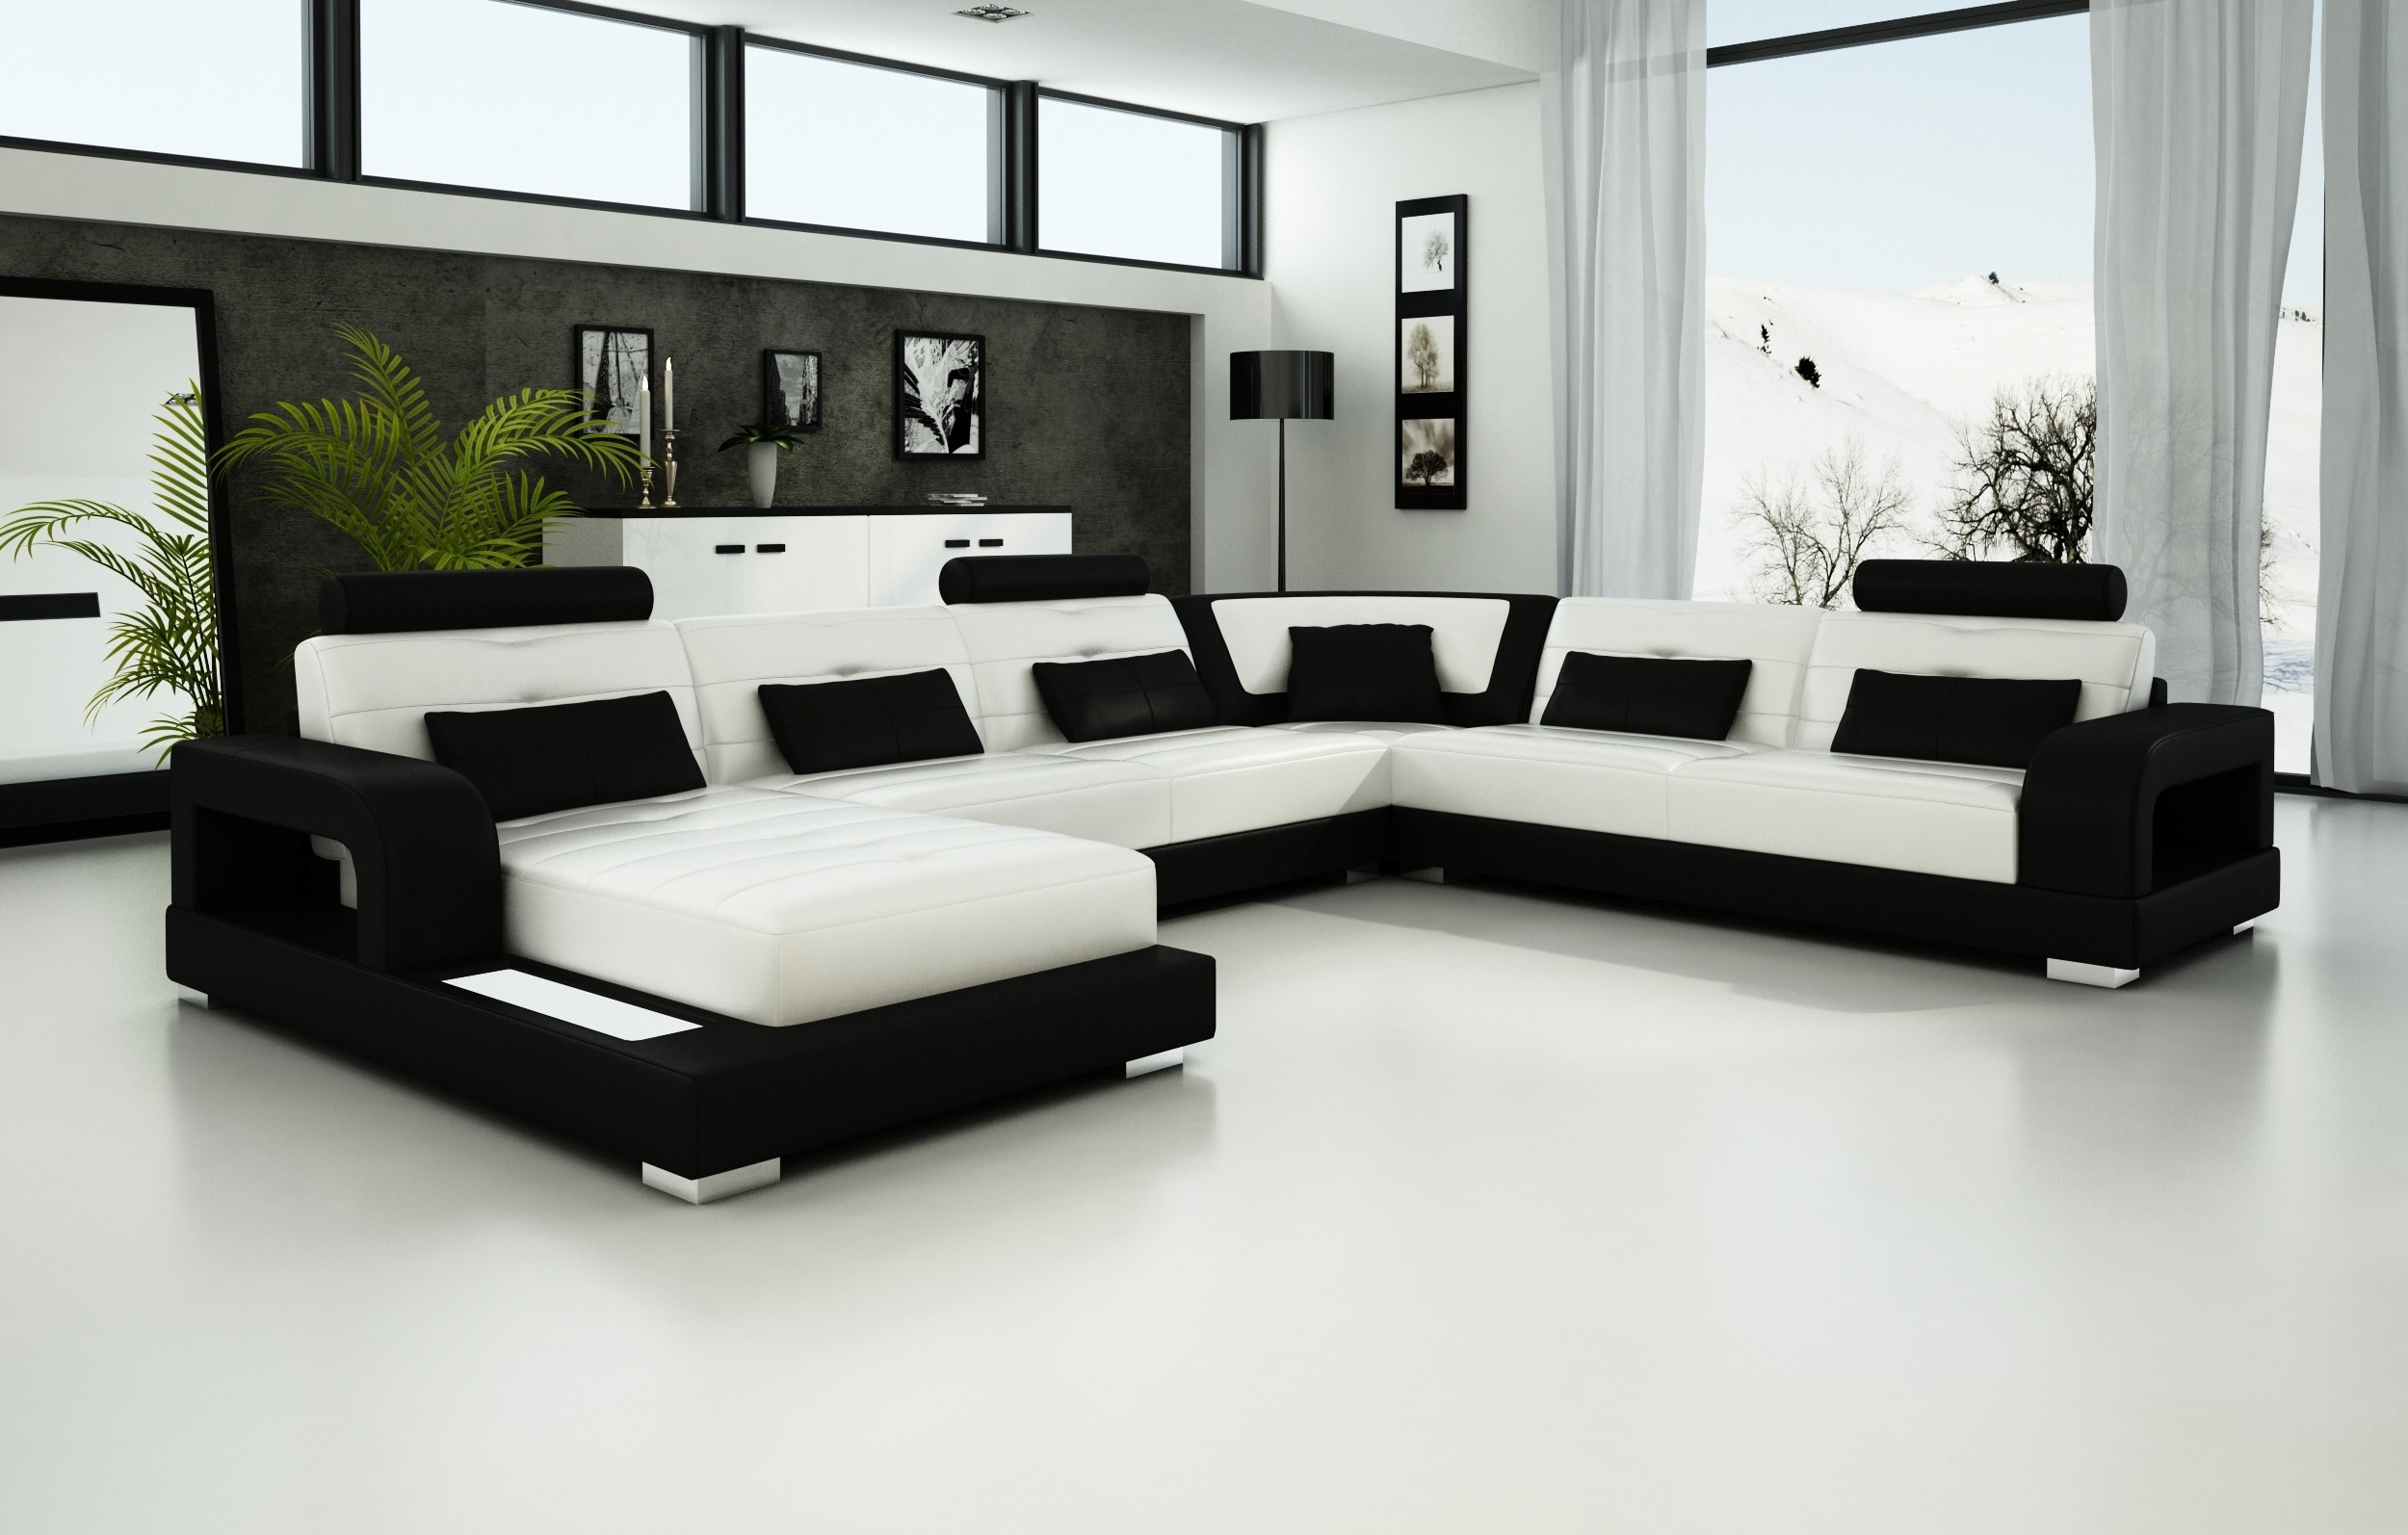 Olympian Sofas Pesaro White Black Leather Sofa – Sectional Sofas Pertaining To Trinidad And Tobago Sectional Sofas (Image 3 of 10)